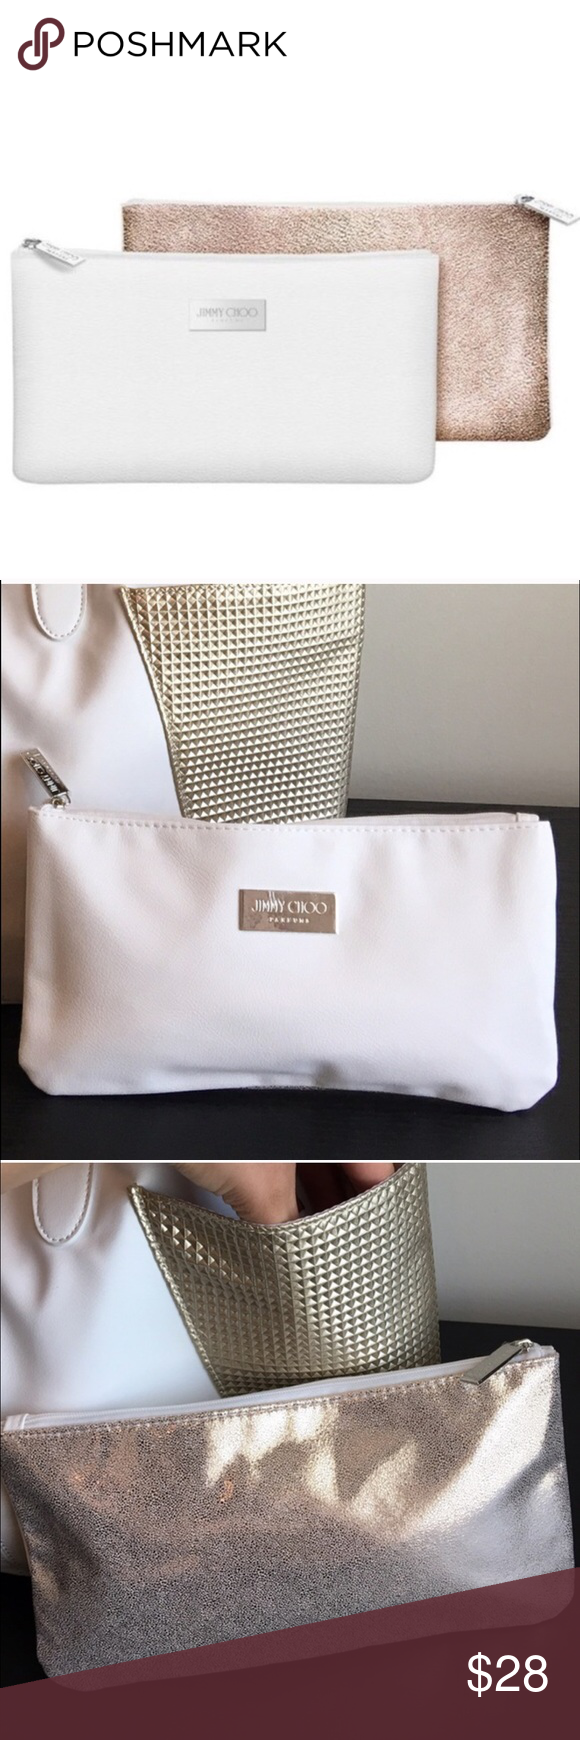 "Jimmy Choo make Up pouch Authentic, Jimmy Choo make up pouch. Two tone, white with silver plate in the front and shimmery gold in the back. As shown! Zipper closure, measures 10""X 5 1/2"". Given as a gift and never used it. NWOT Jimmy Choo Bags Cosmetic Bags & Cases"